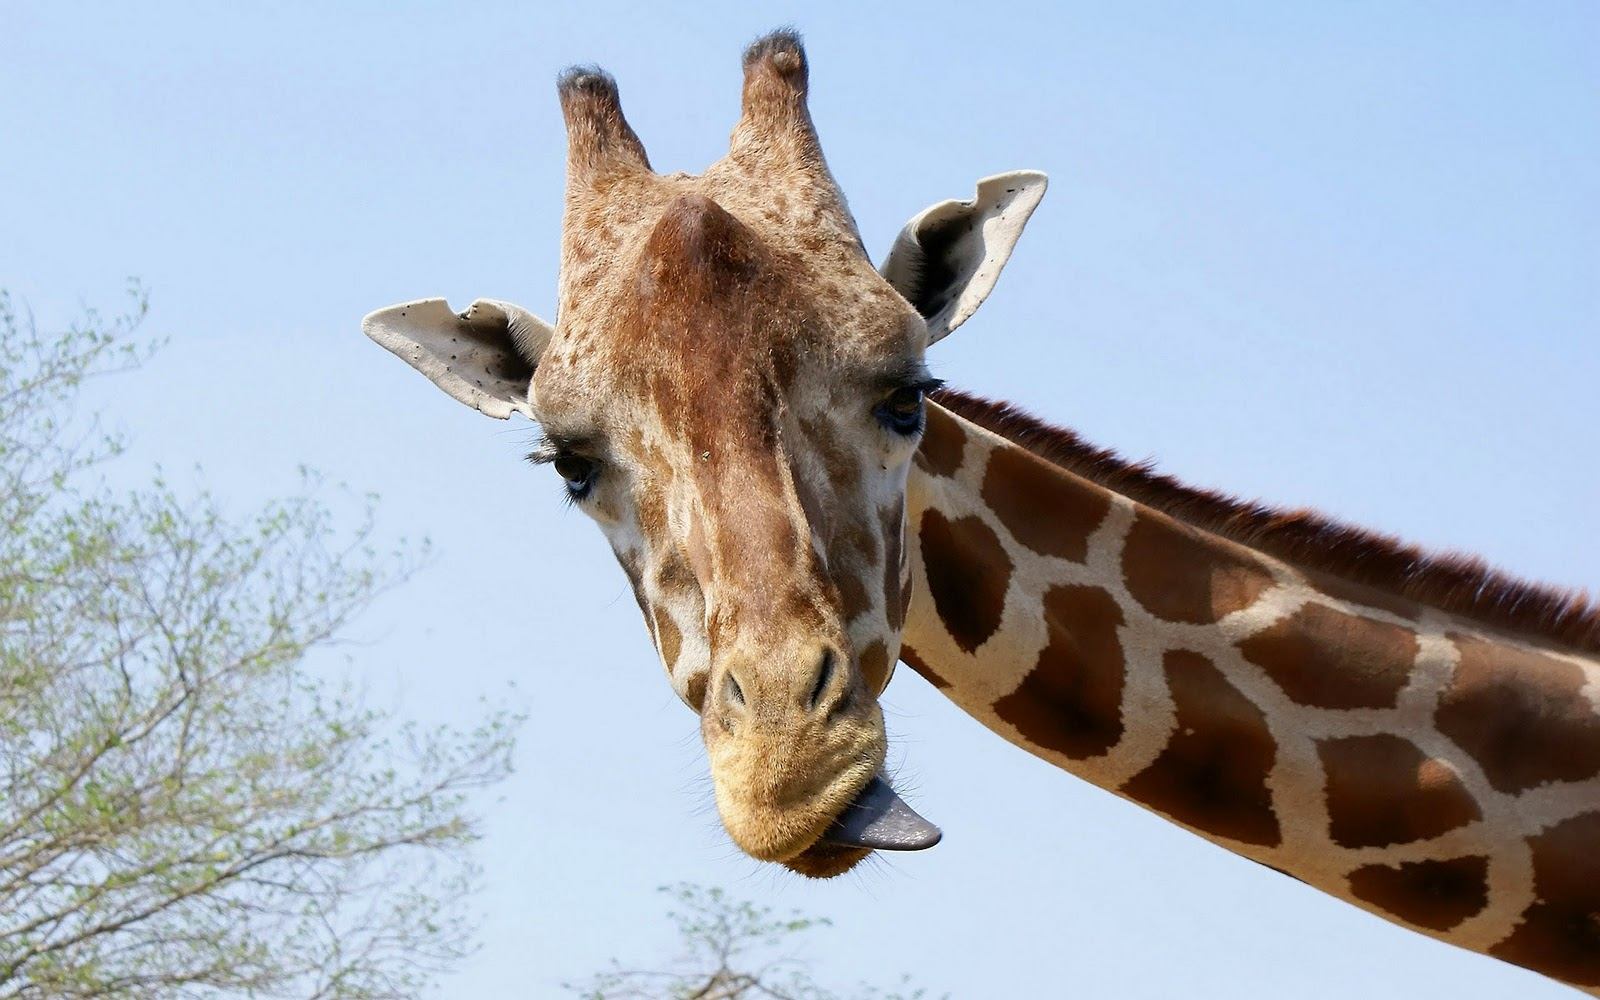 giraffe wallpapers hd pictures - photo #10